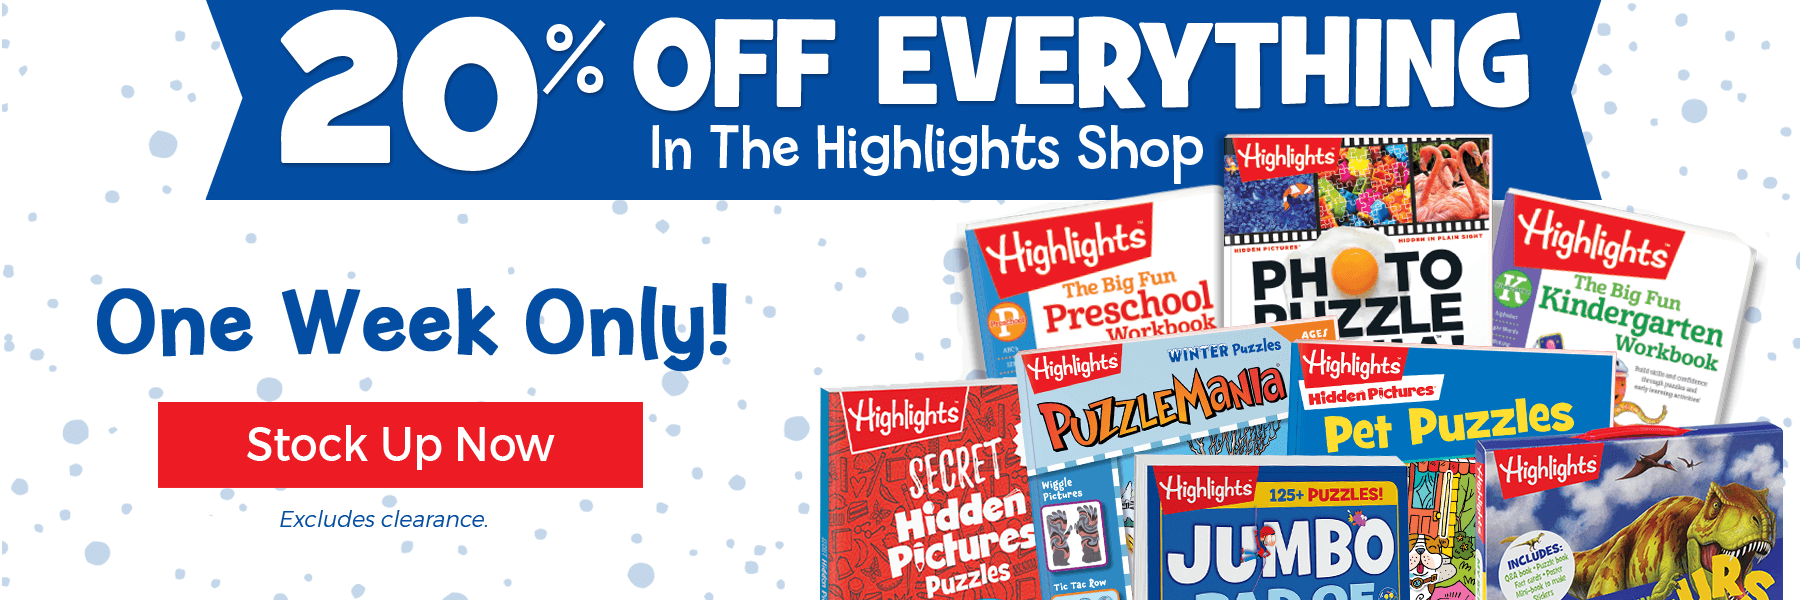 For one week only take 20% off everything in The Highlights Shop, excluding clearance items